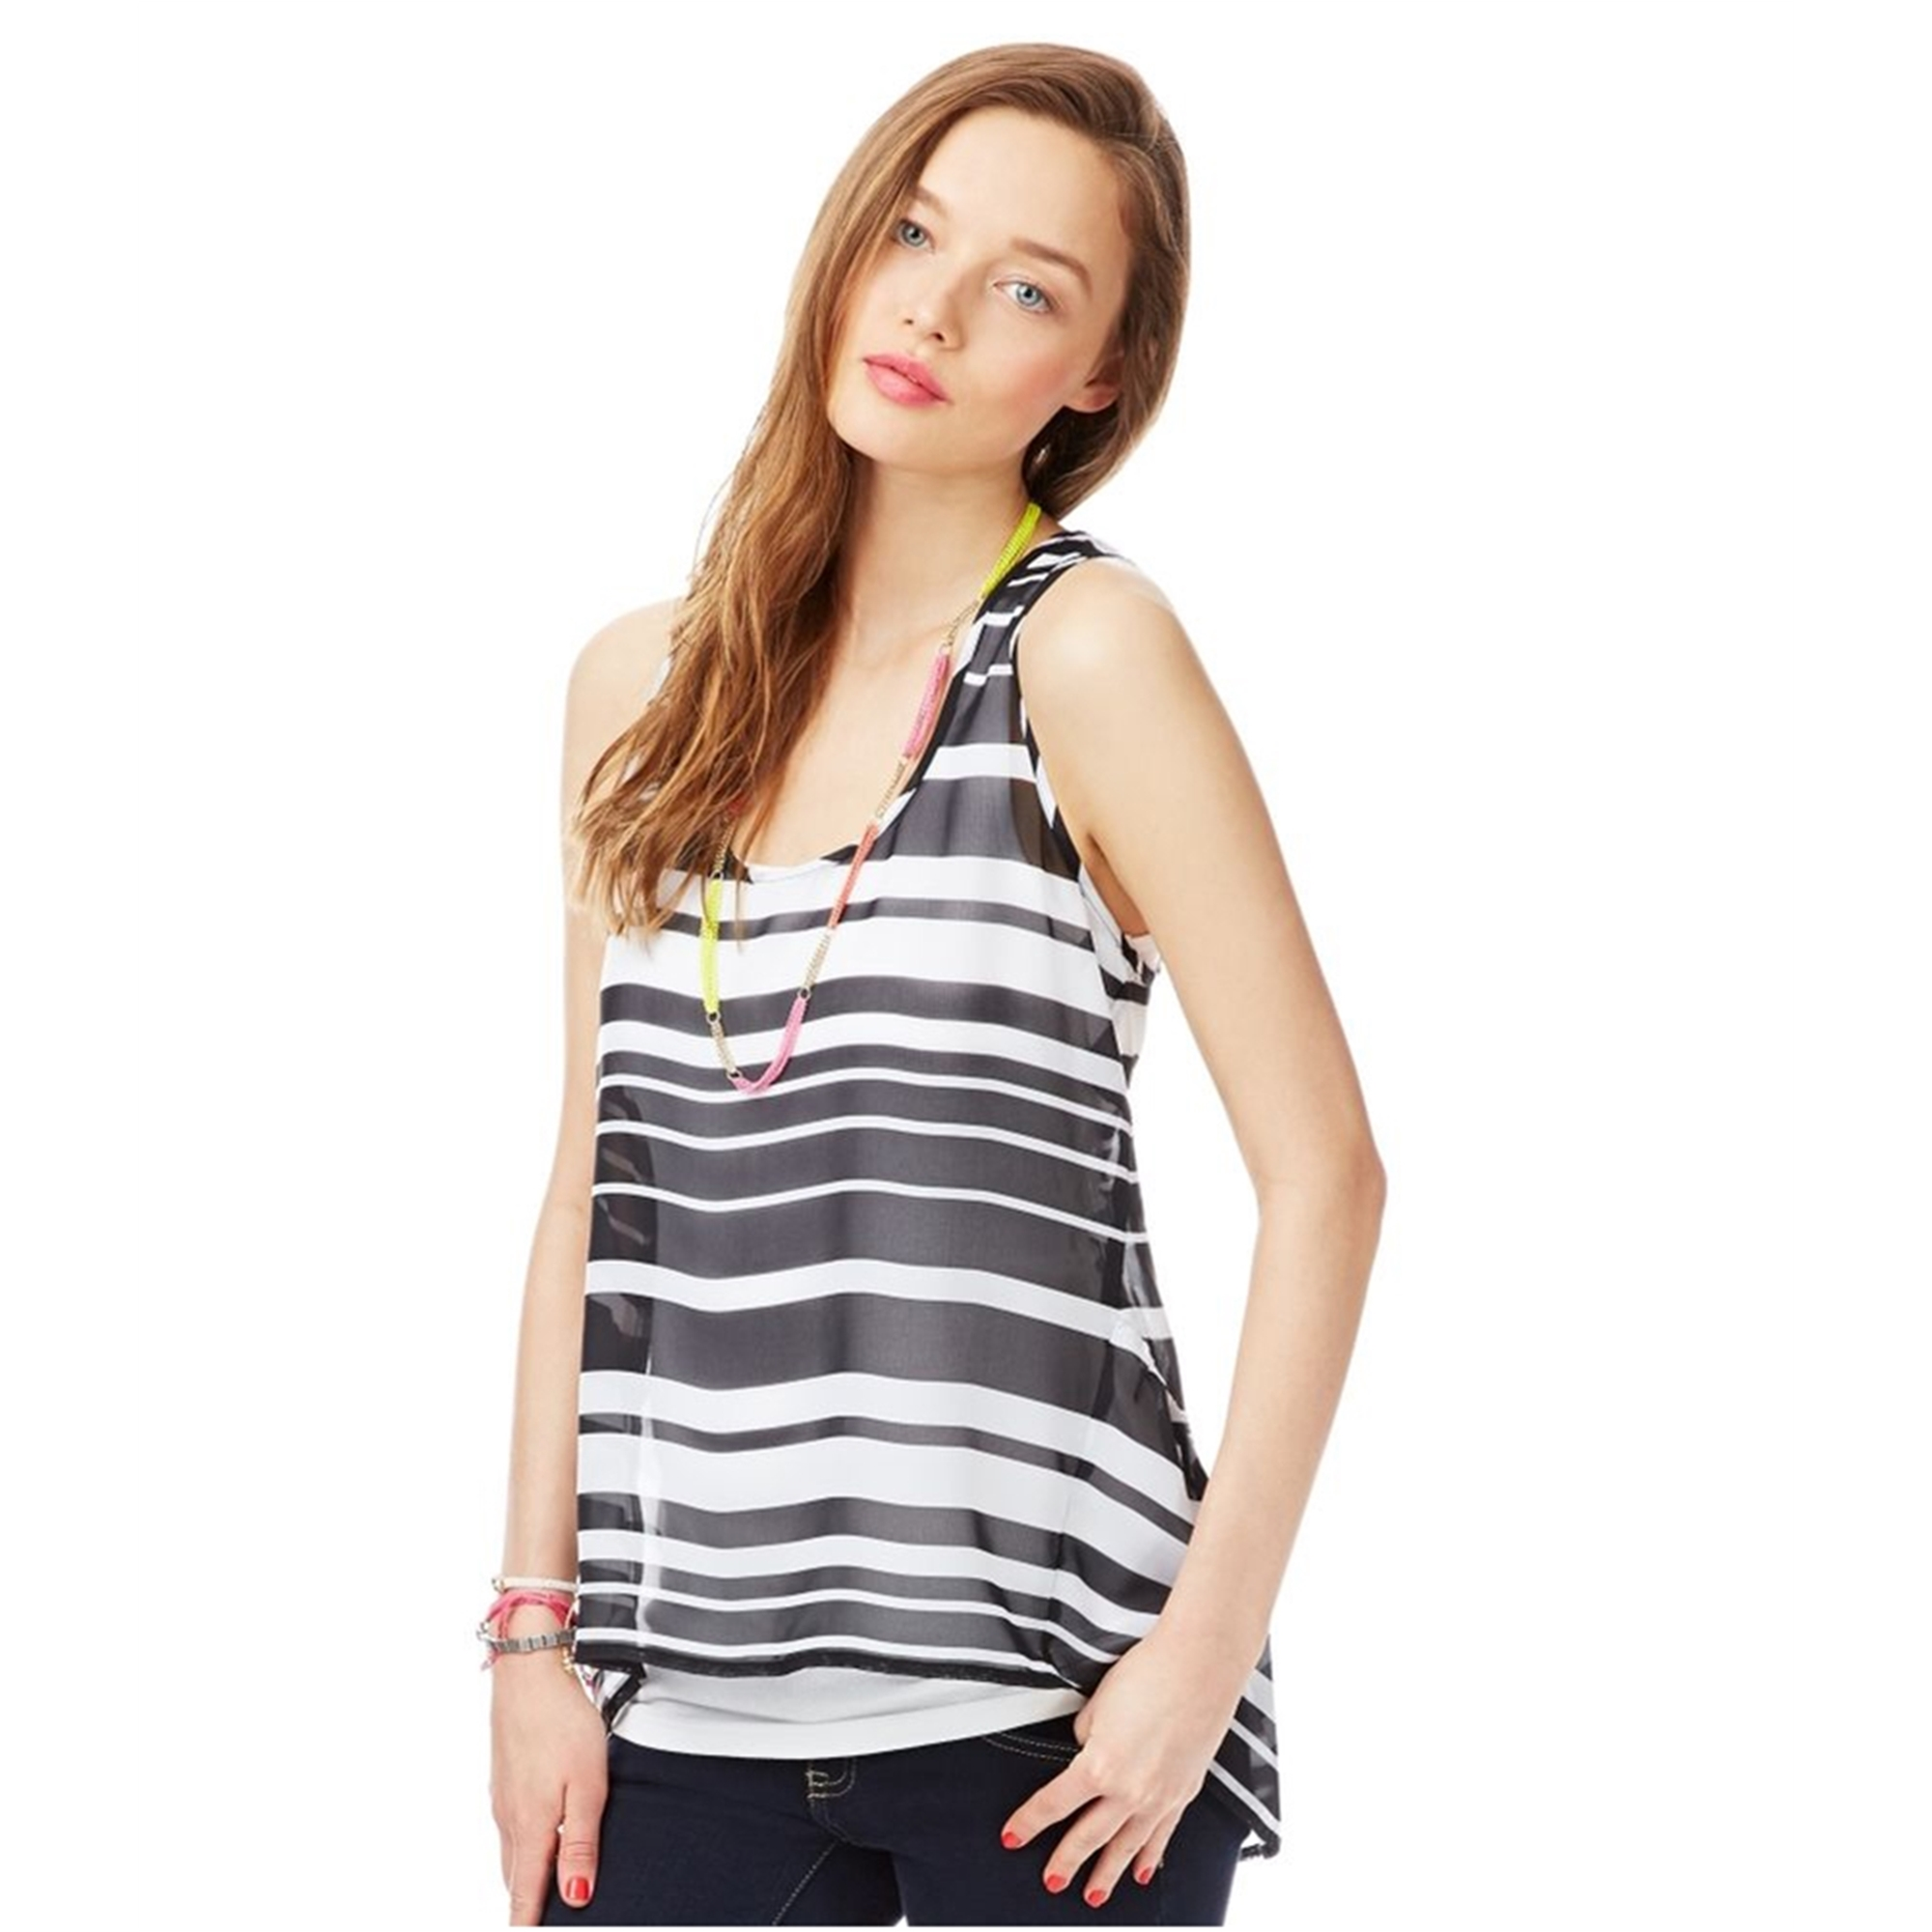 Aeropostale Womens Sheer Striped Extended Back Tank Top